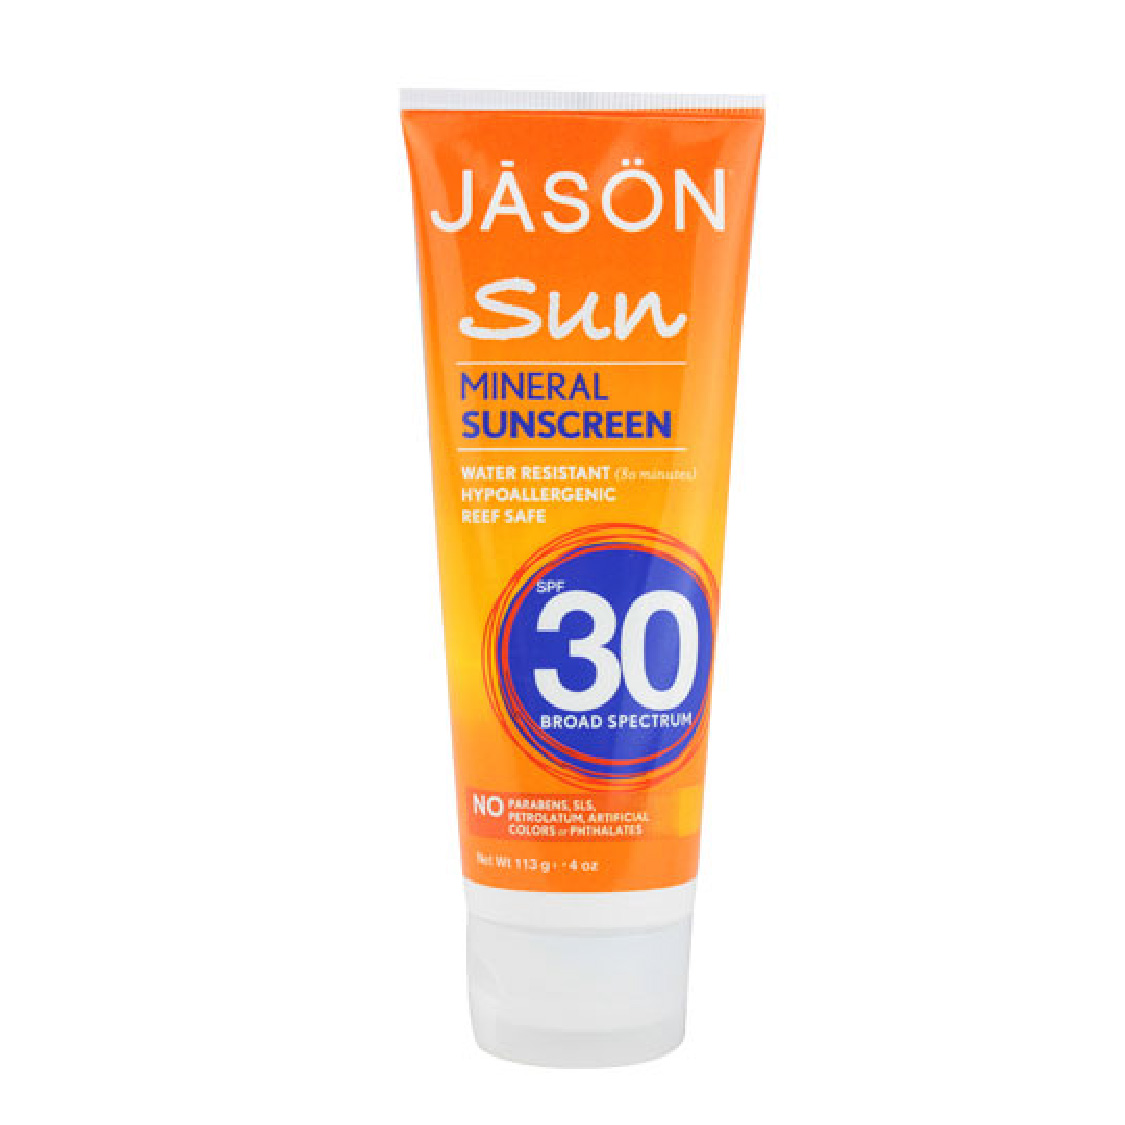 JASON Sun Mineral Sunscreen, SPF 30